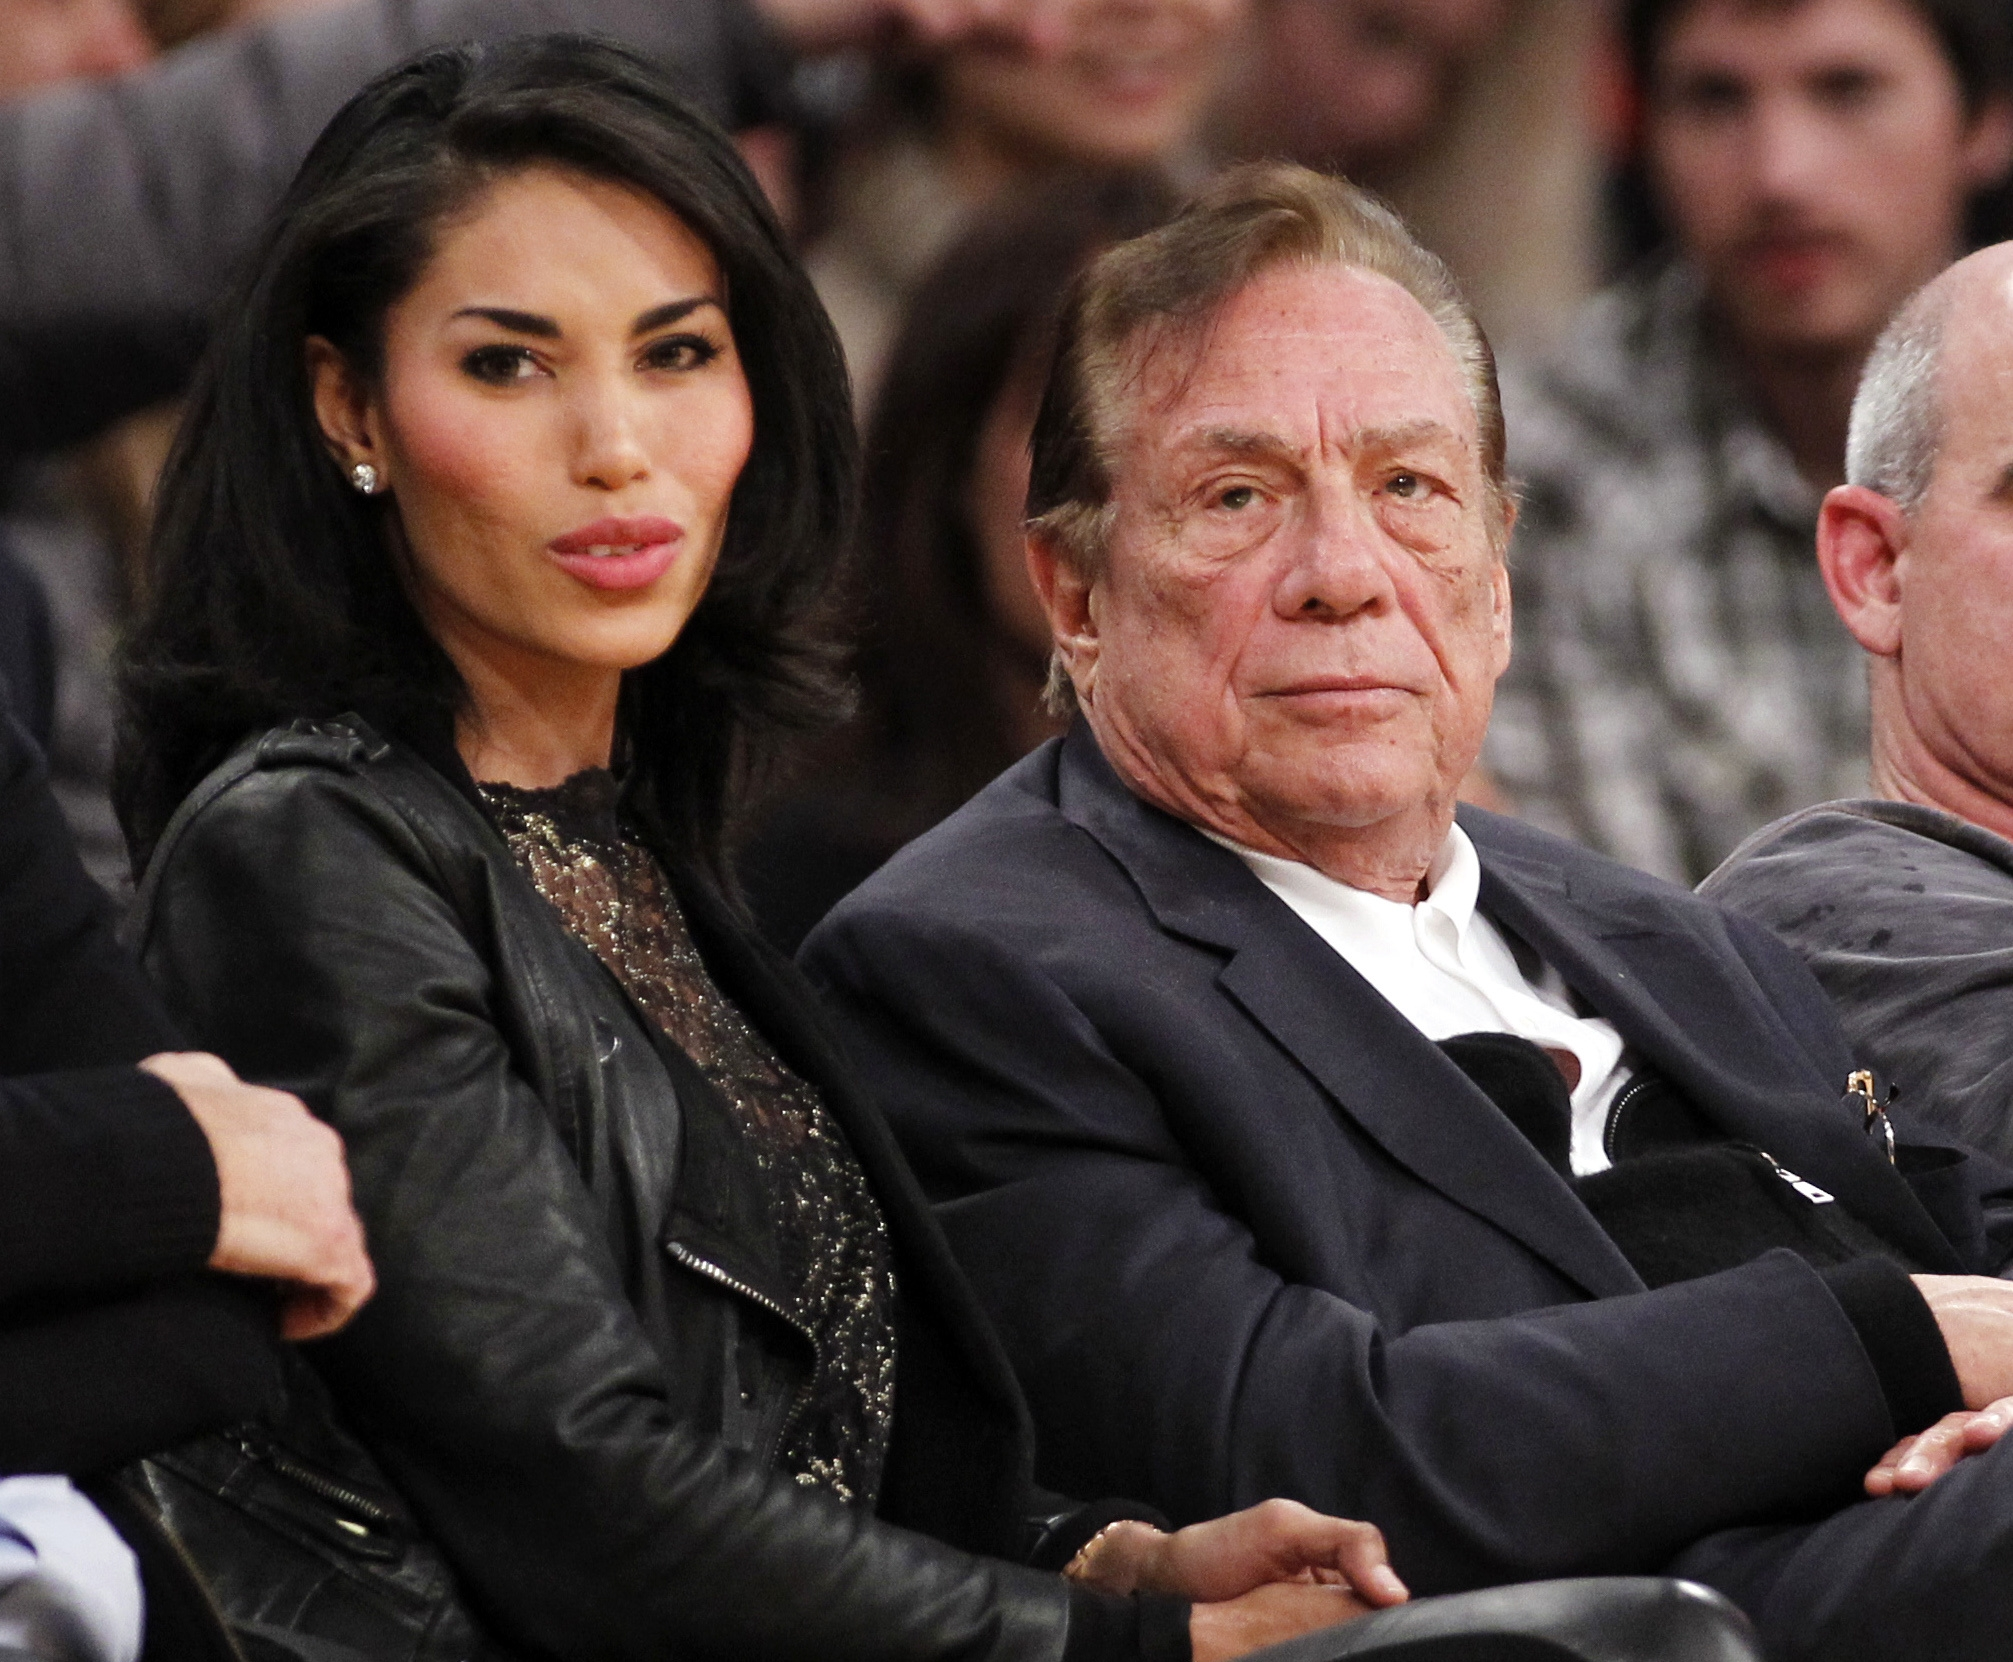 Clippers owner Donald Sterling, with V. Stiviano at a preseason game, faces a ban and a $2.5 million fine for racist remarks